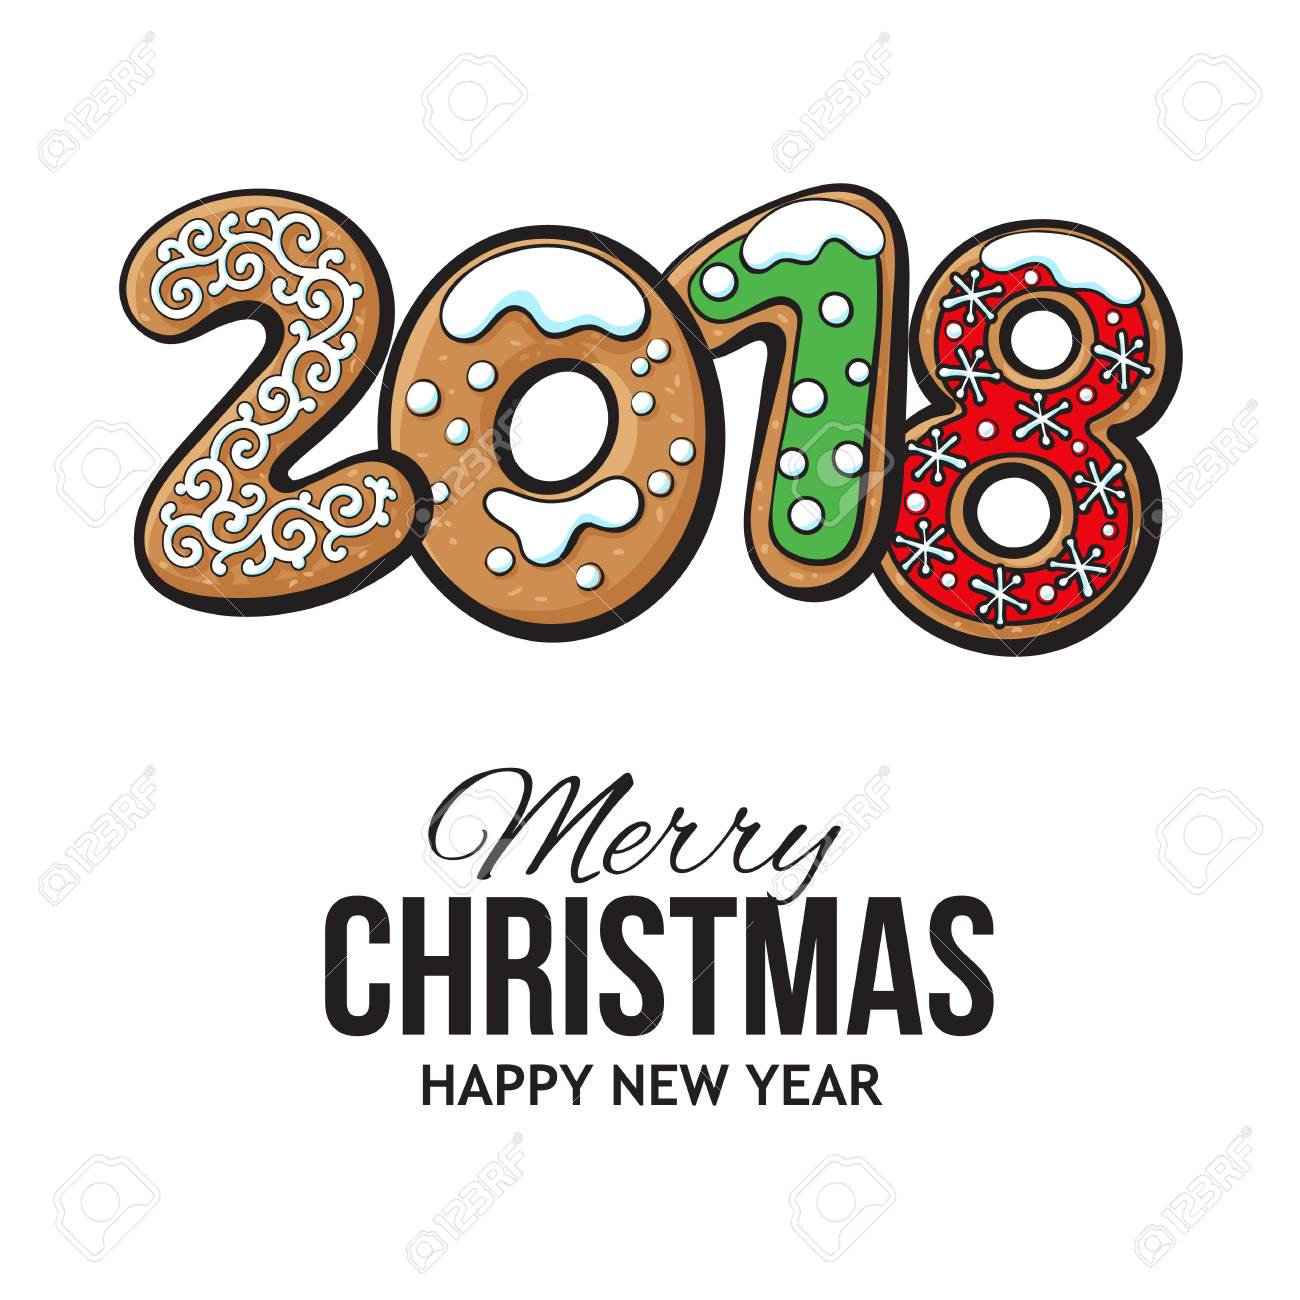 2018 Merry Christmas and New Year greeting card design with gingerbread...